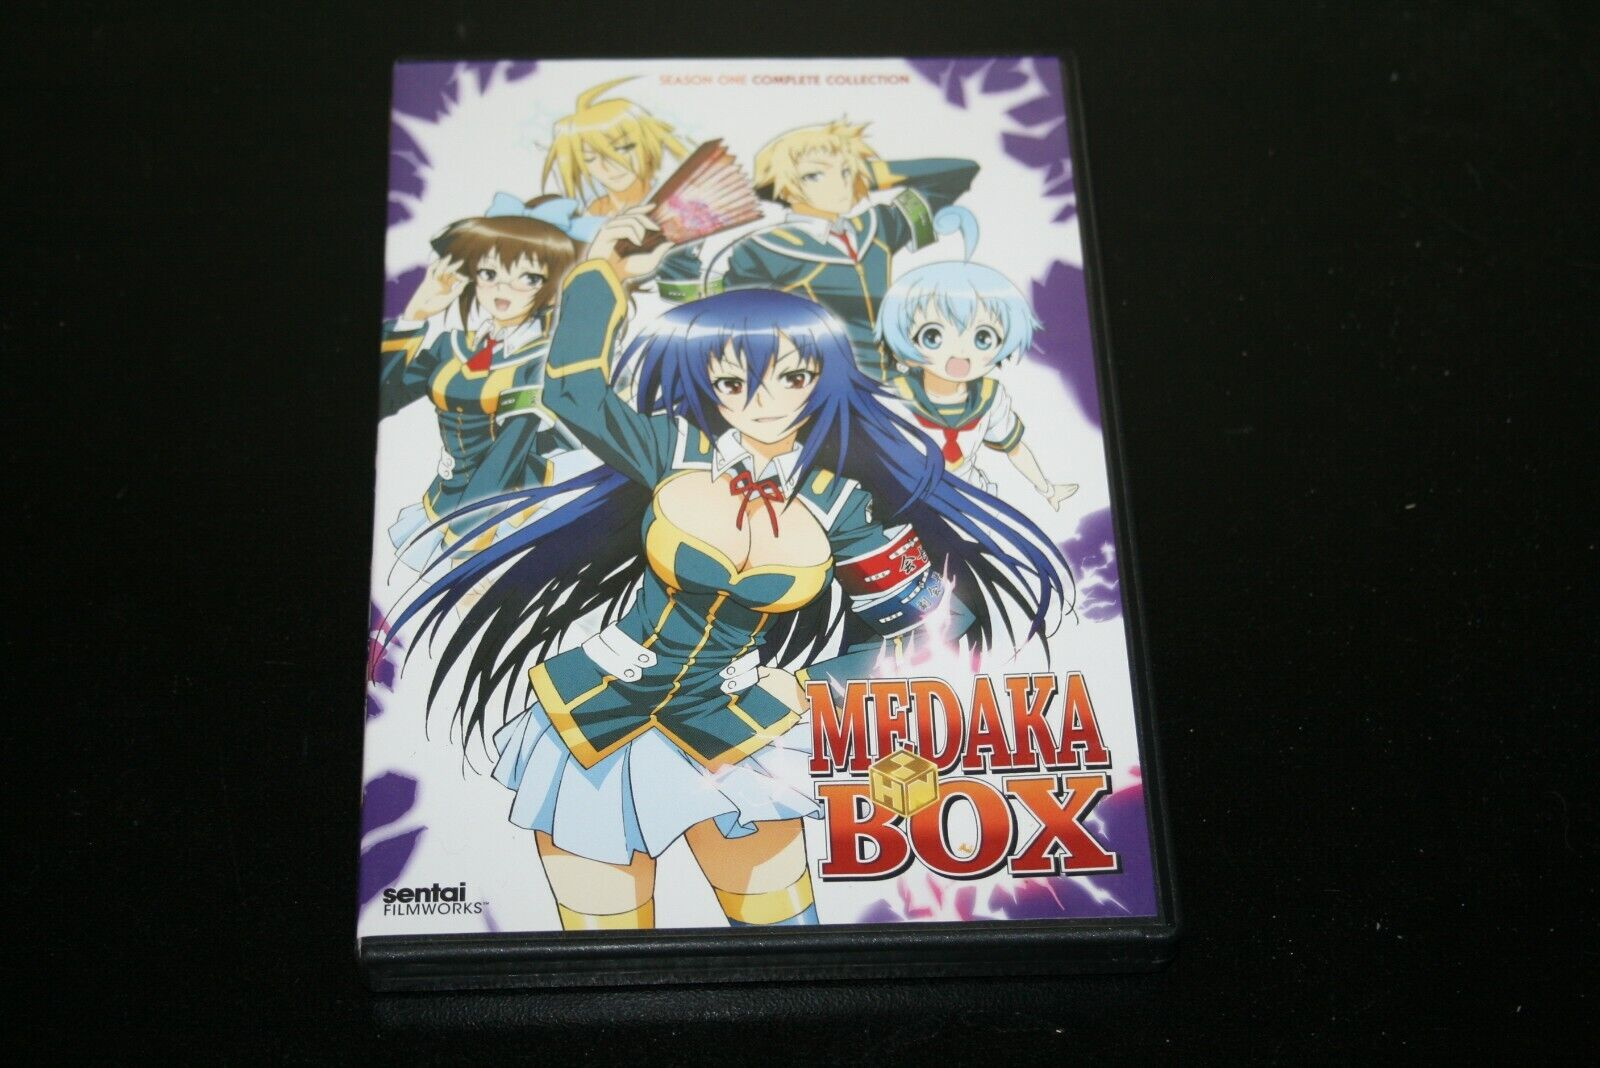 Anime Sentai MEDAKA BOX Complete Collection Season One 3 Disc DVD - $7.97